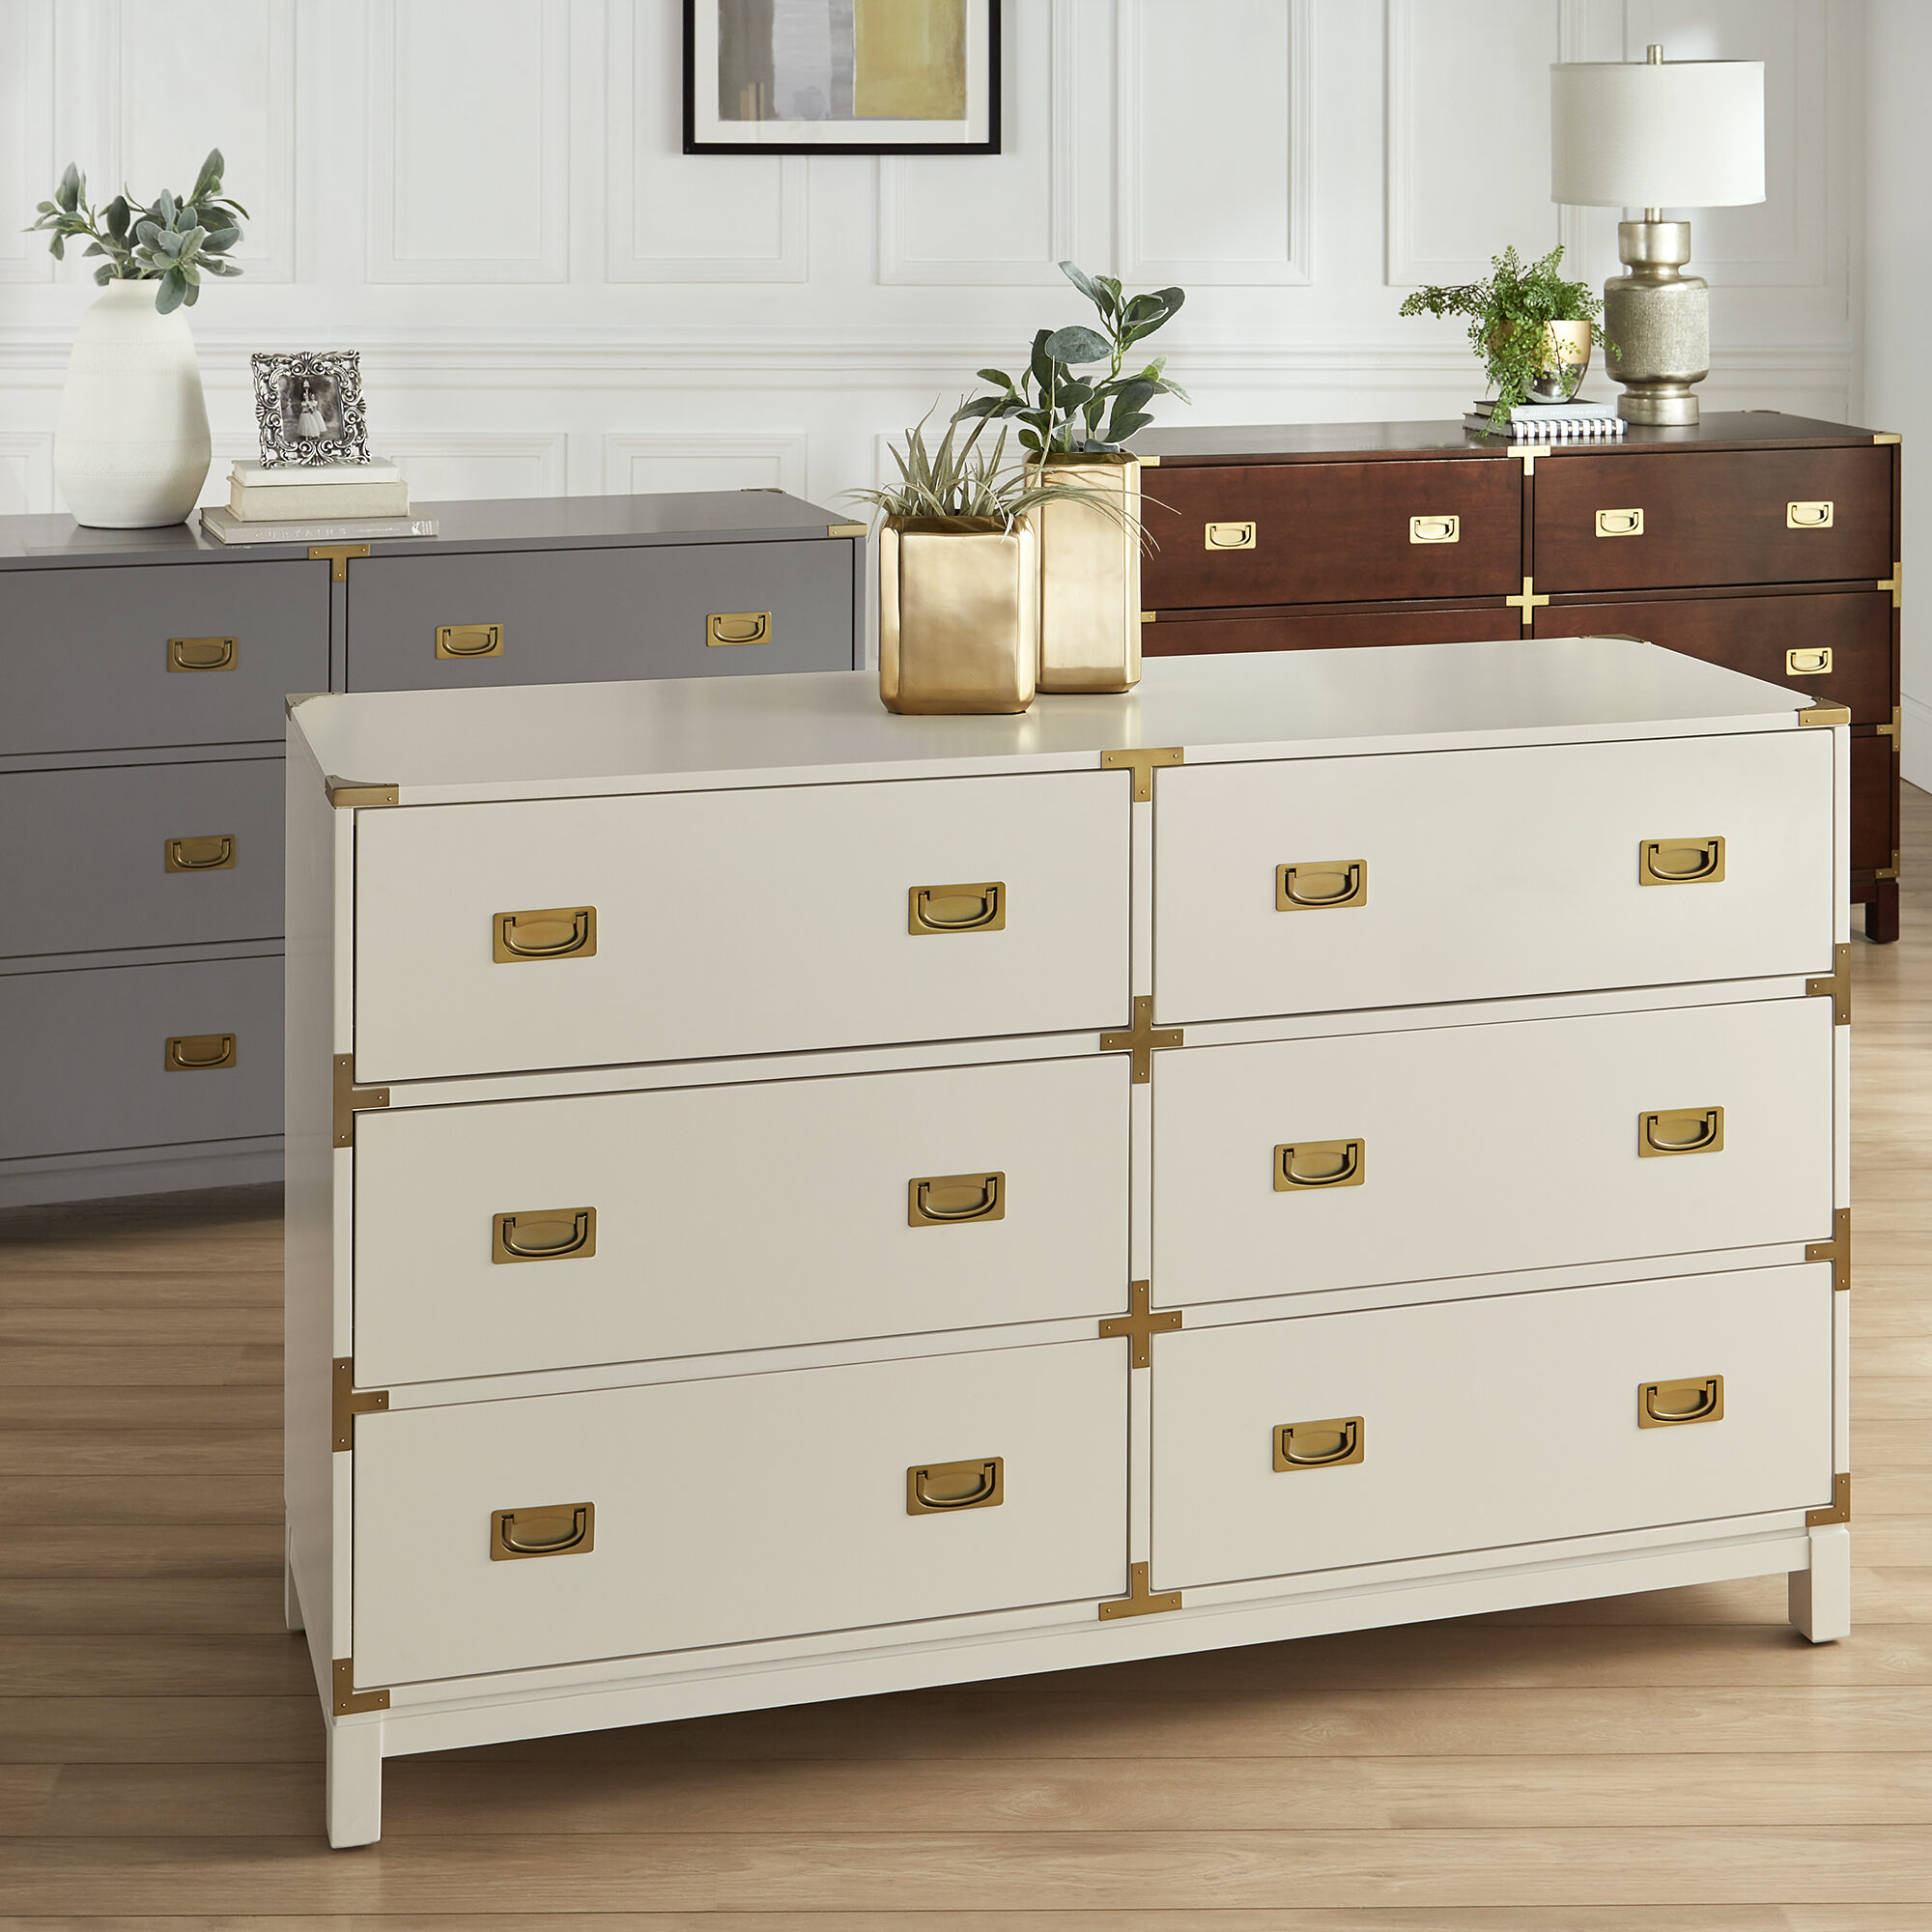 The third of our teen bedroom furniture: the dresser. This is the Kedric 6-Drawer Gold Accent Dresser by iNSPIRE Q Bold. It comes in three colors (grey, espresso, and white). It is two-drawers wide and has a total of six drawers. Also features gold metal accents and drawer pulls.